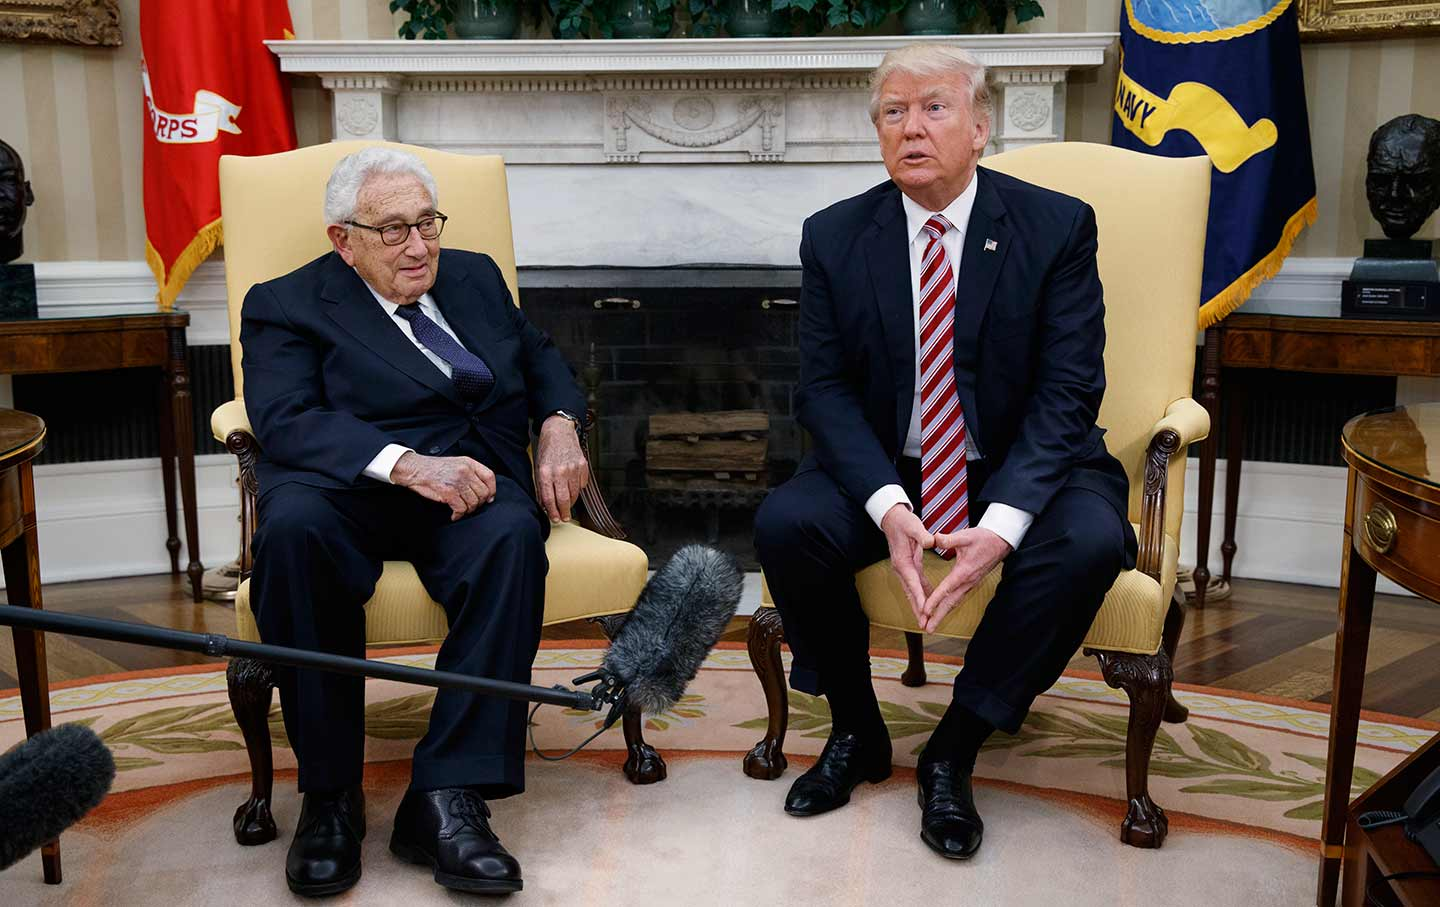 Trump and Kissinger